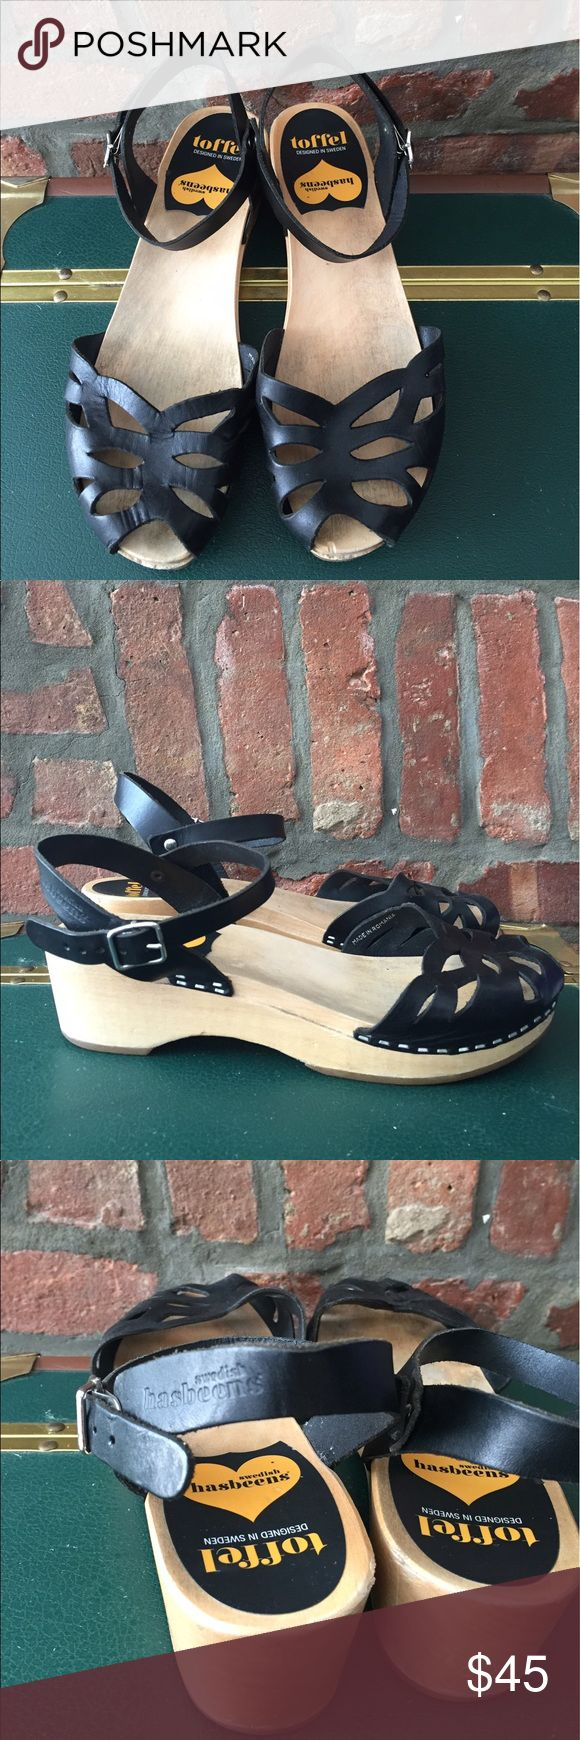 Swedish Hasbeens Ornament Clog sandals, sz 7.5 Swedish Hasbeens Ornament Clog sandals in black leather, size 7.5. A bit worn but the leather is in good condition and the wood has been cleaned. Swedish Hasbeens Shoes Sandals